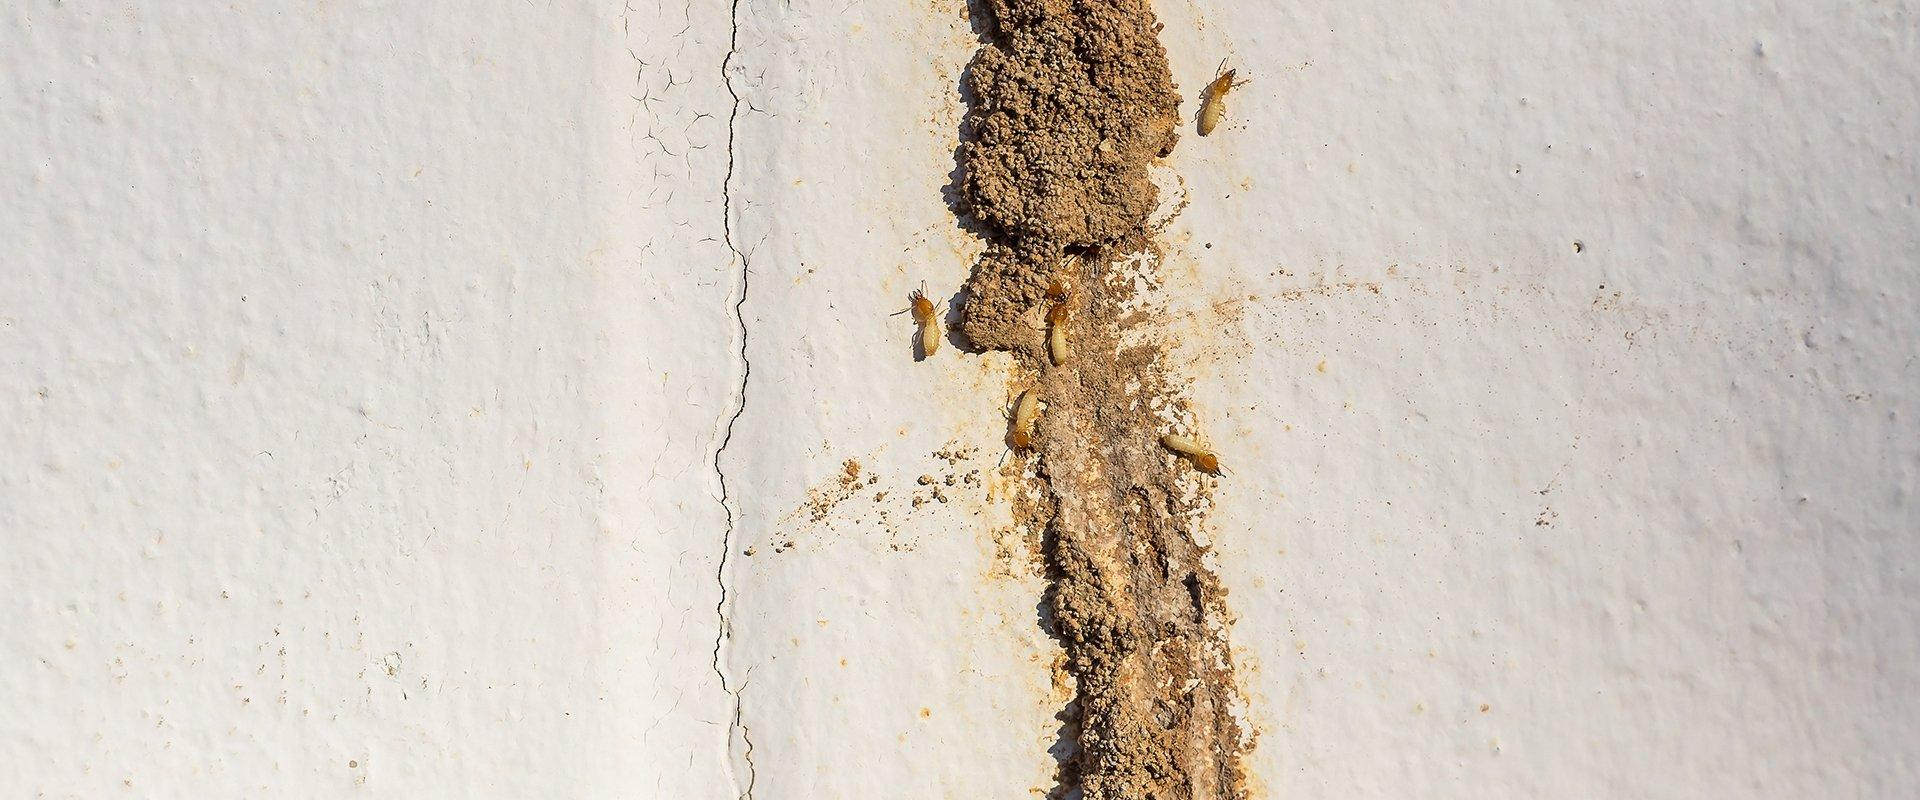 termites coming out of a mud tube